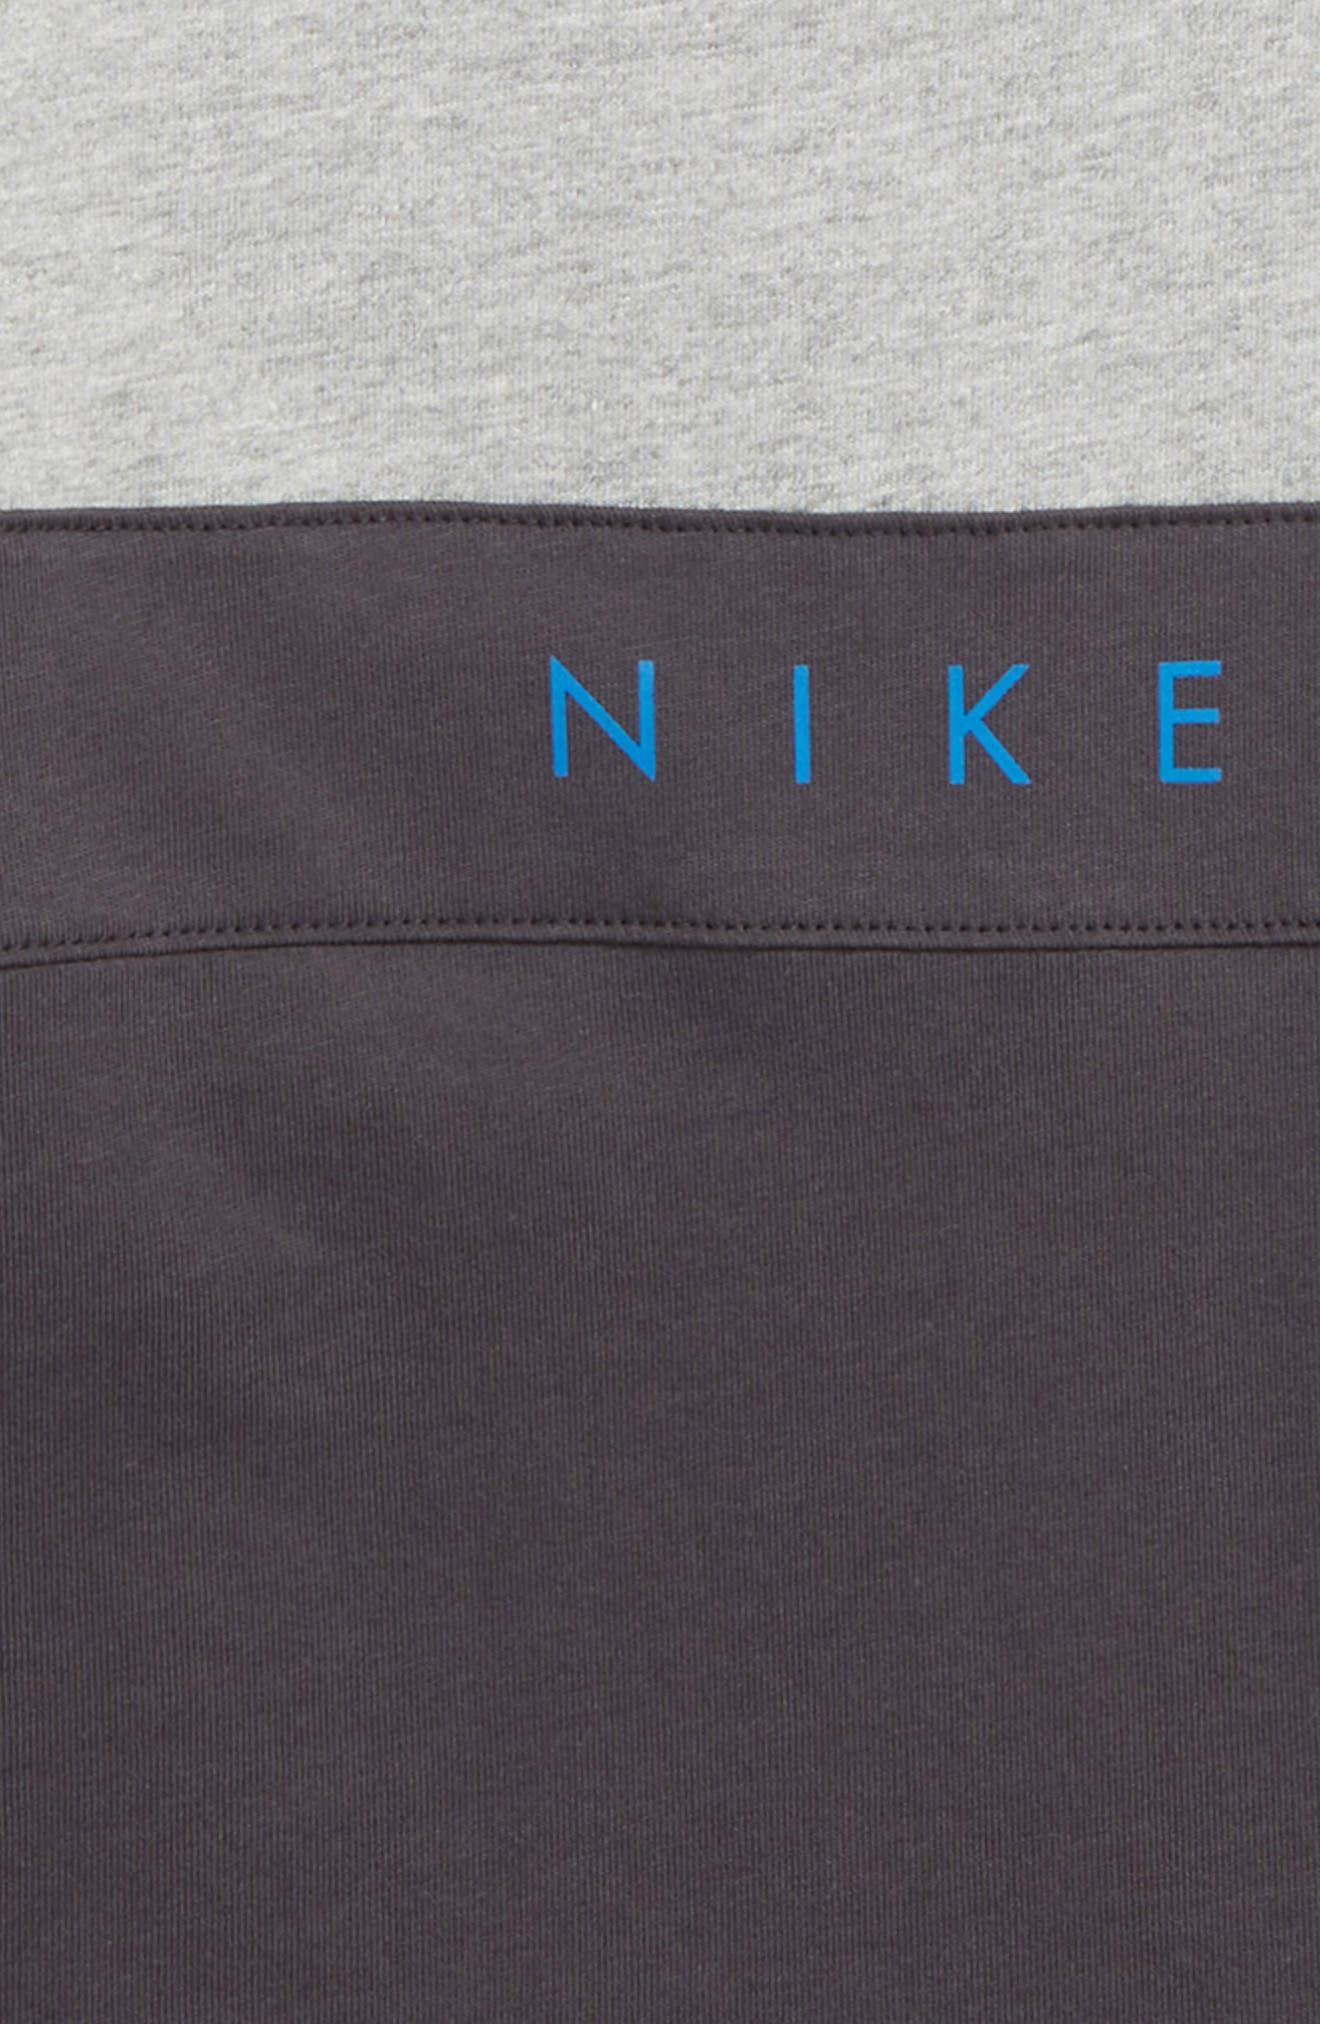 Air Shirt,                             Alternate thumbnail 3, color,                             Dark Grey Heather/ Anthracite